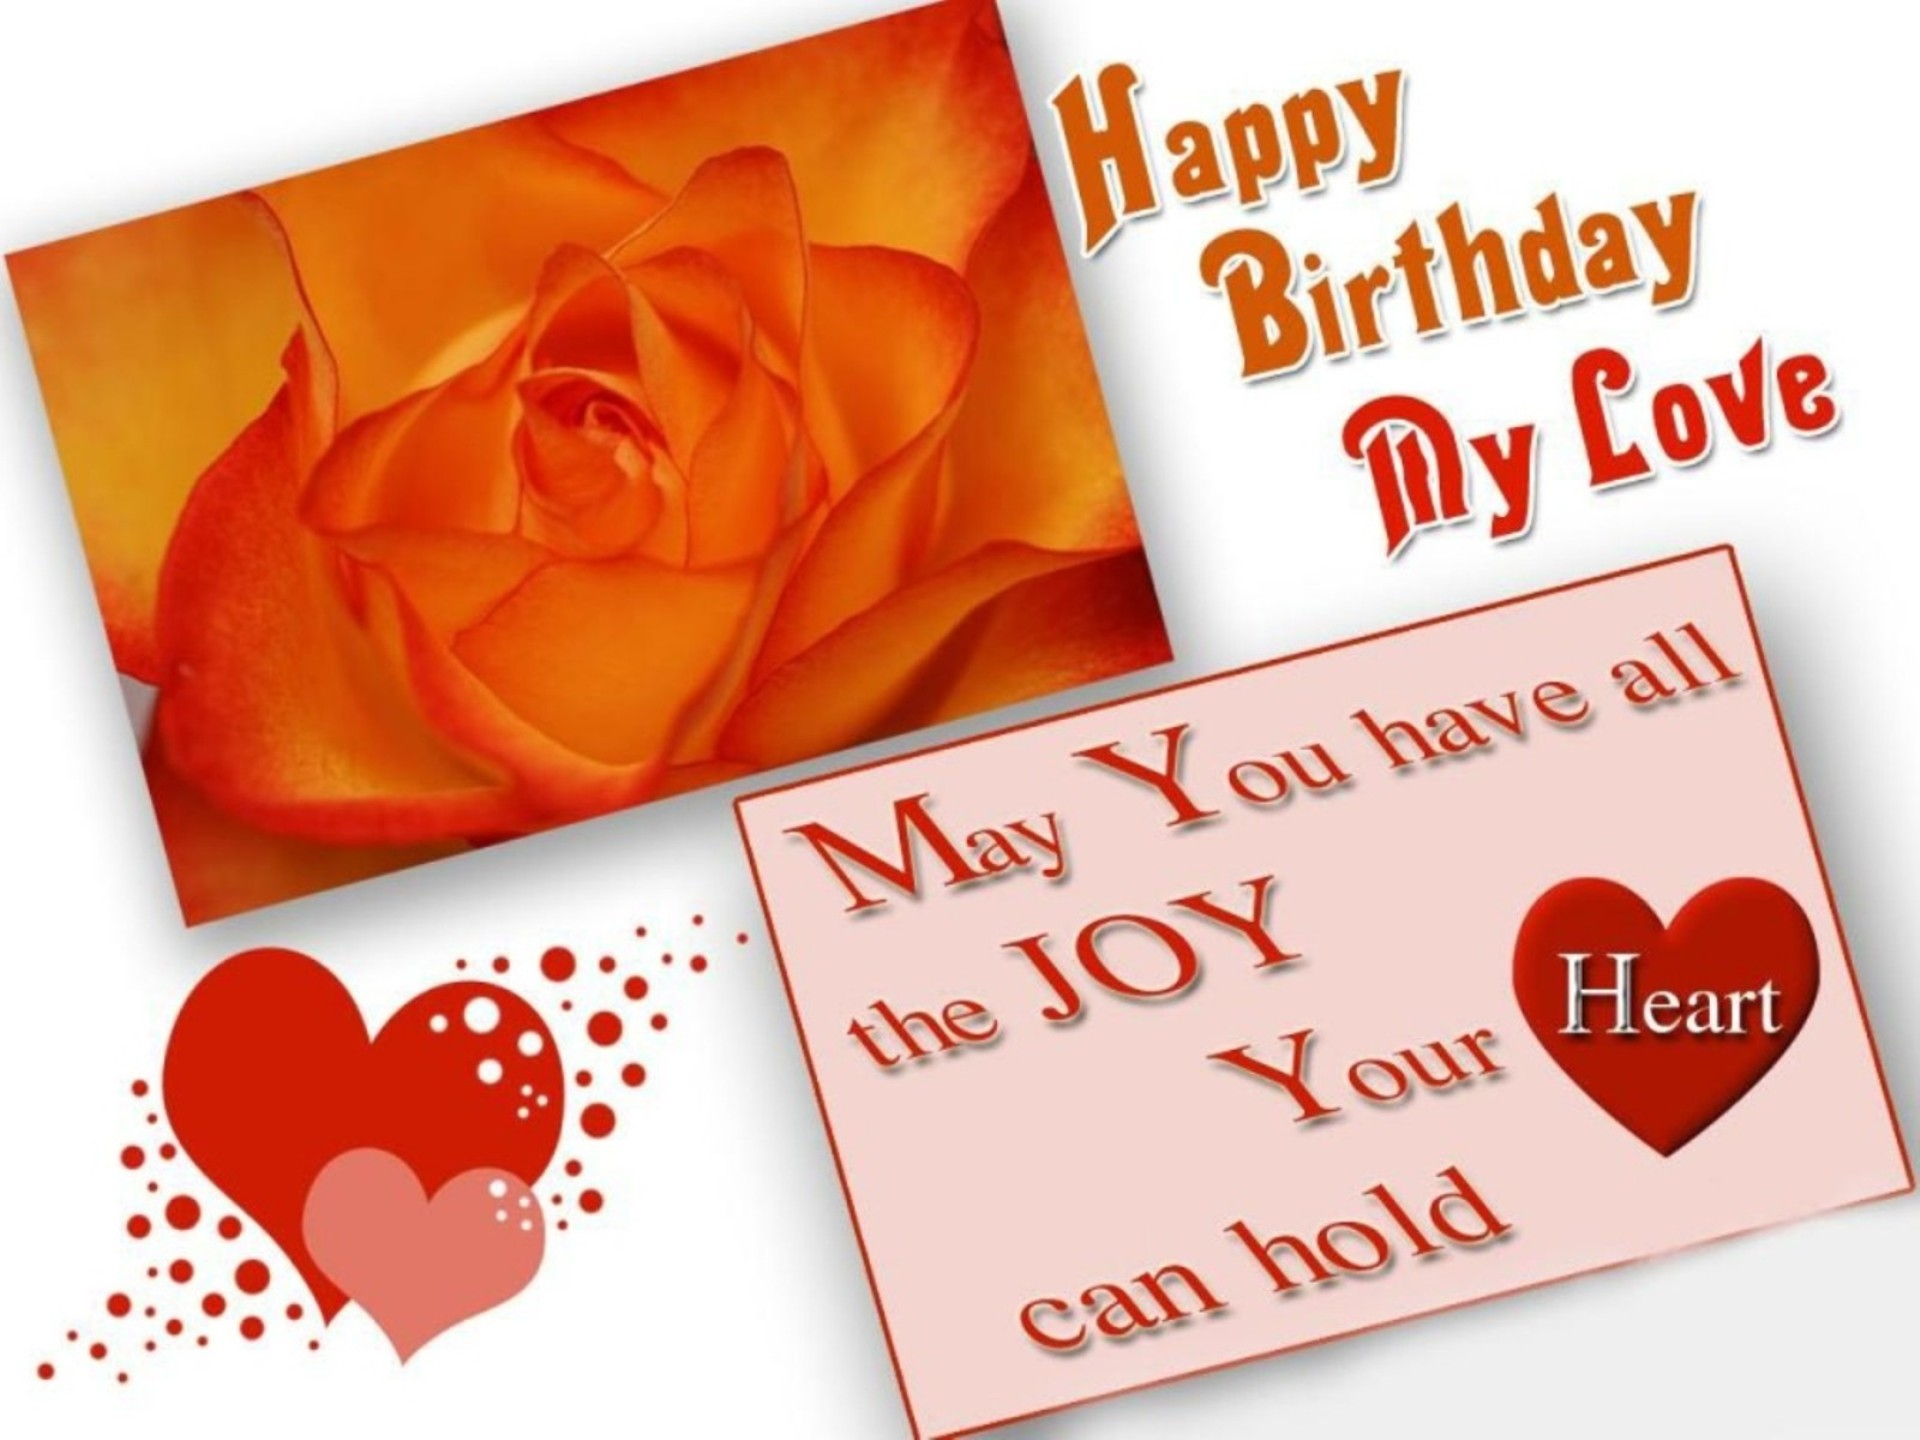 birthday wishes wallpaper for lover ; the-collection-of-romantic-birthday-wishes-that-can-make-your-wife-touched-3